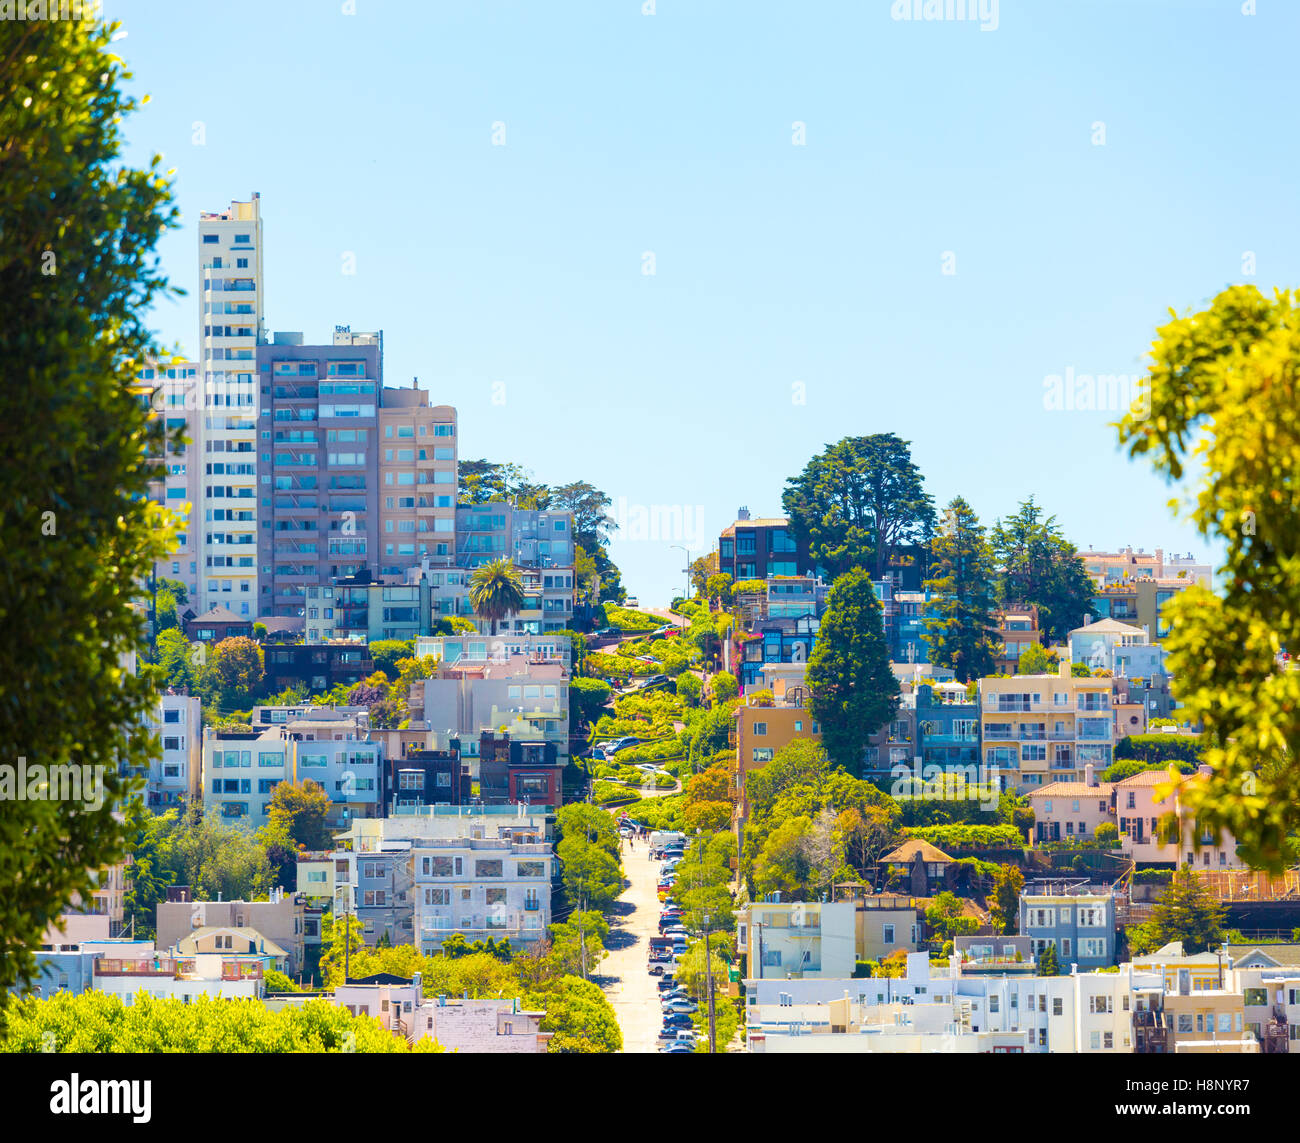 Distant view of most crooked street in the world, Lombard Street an iconic tourist attraction, against a beautiful - Stock Image